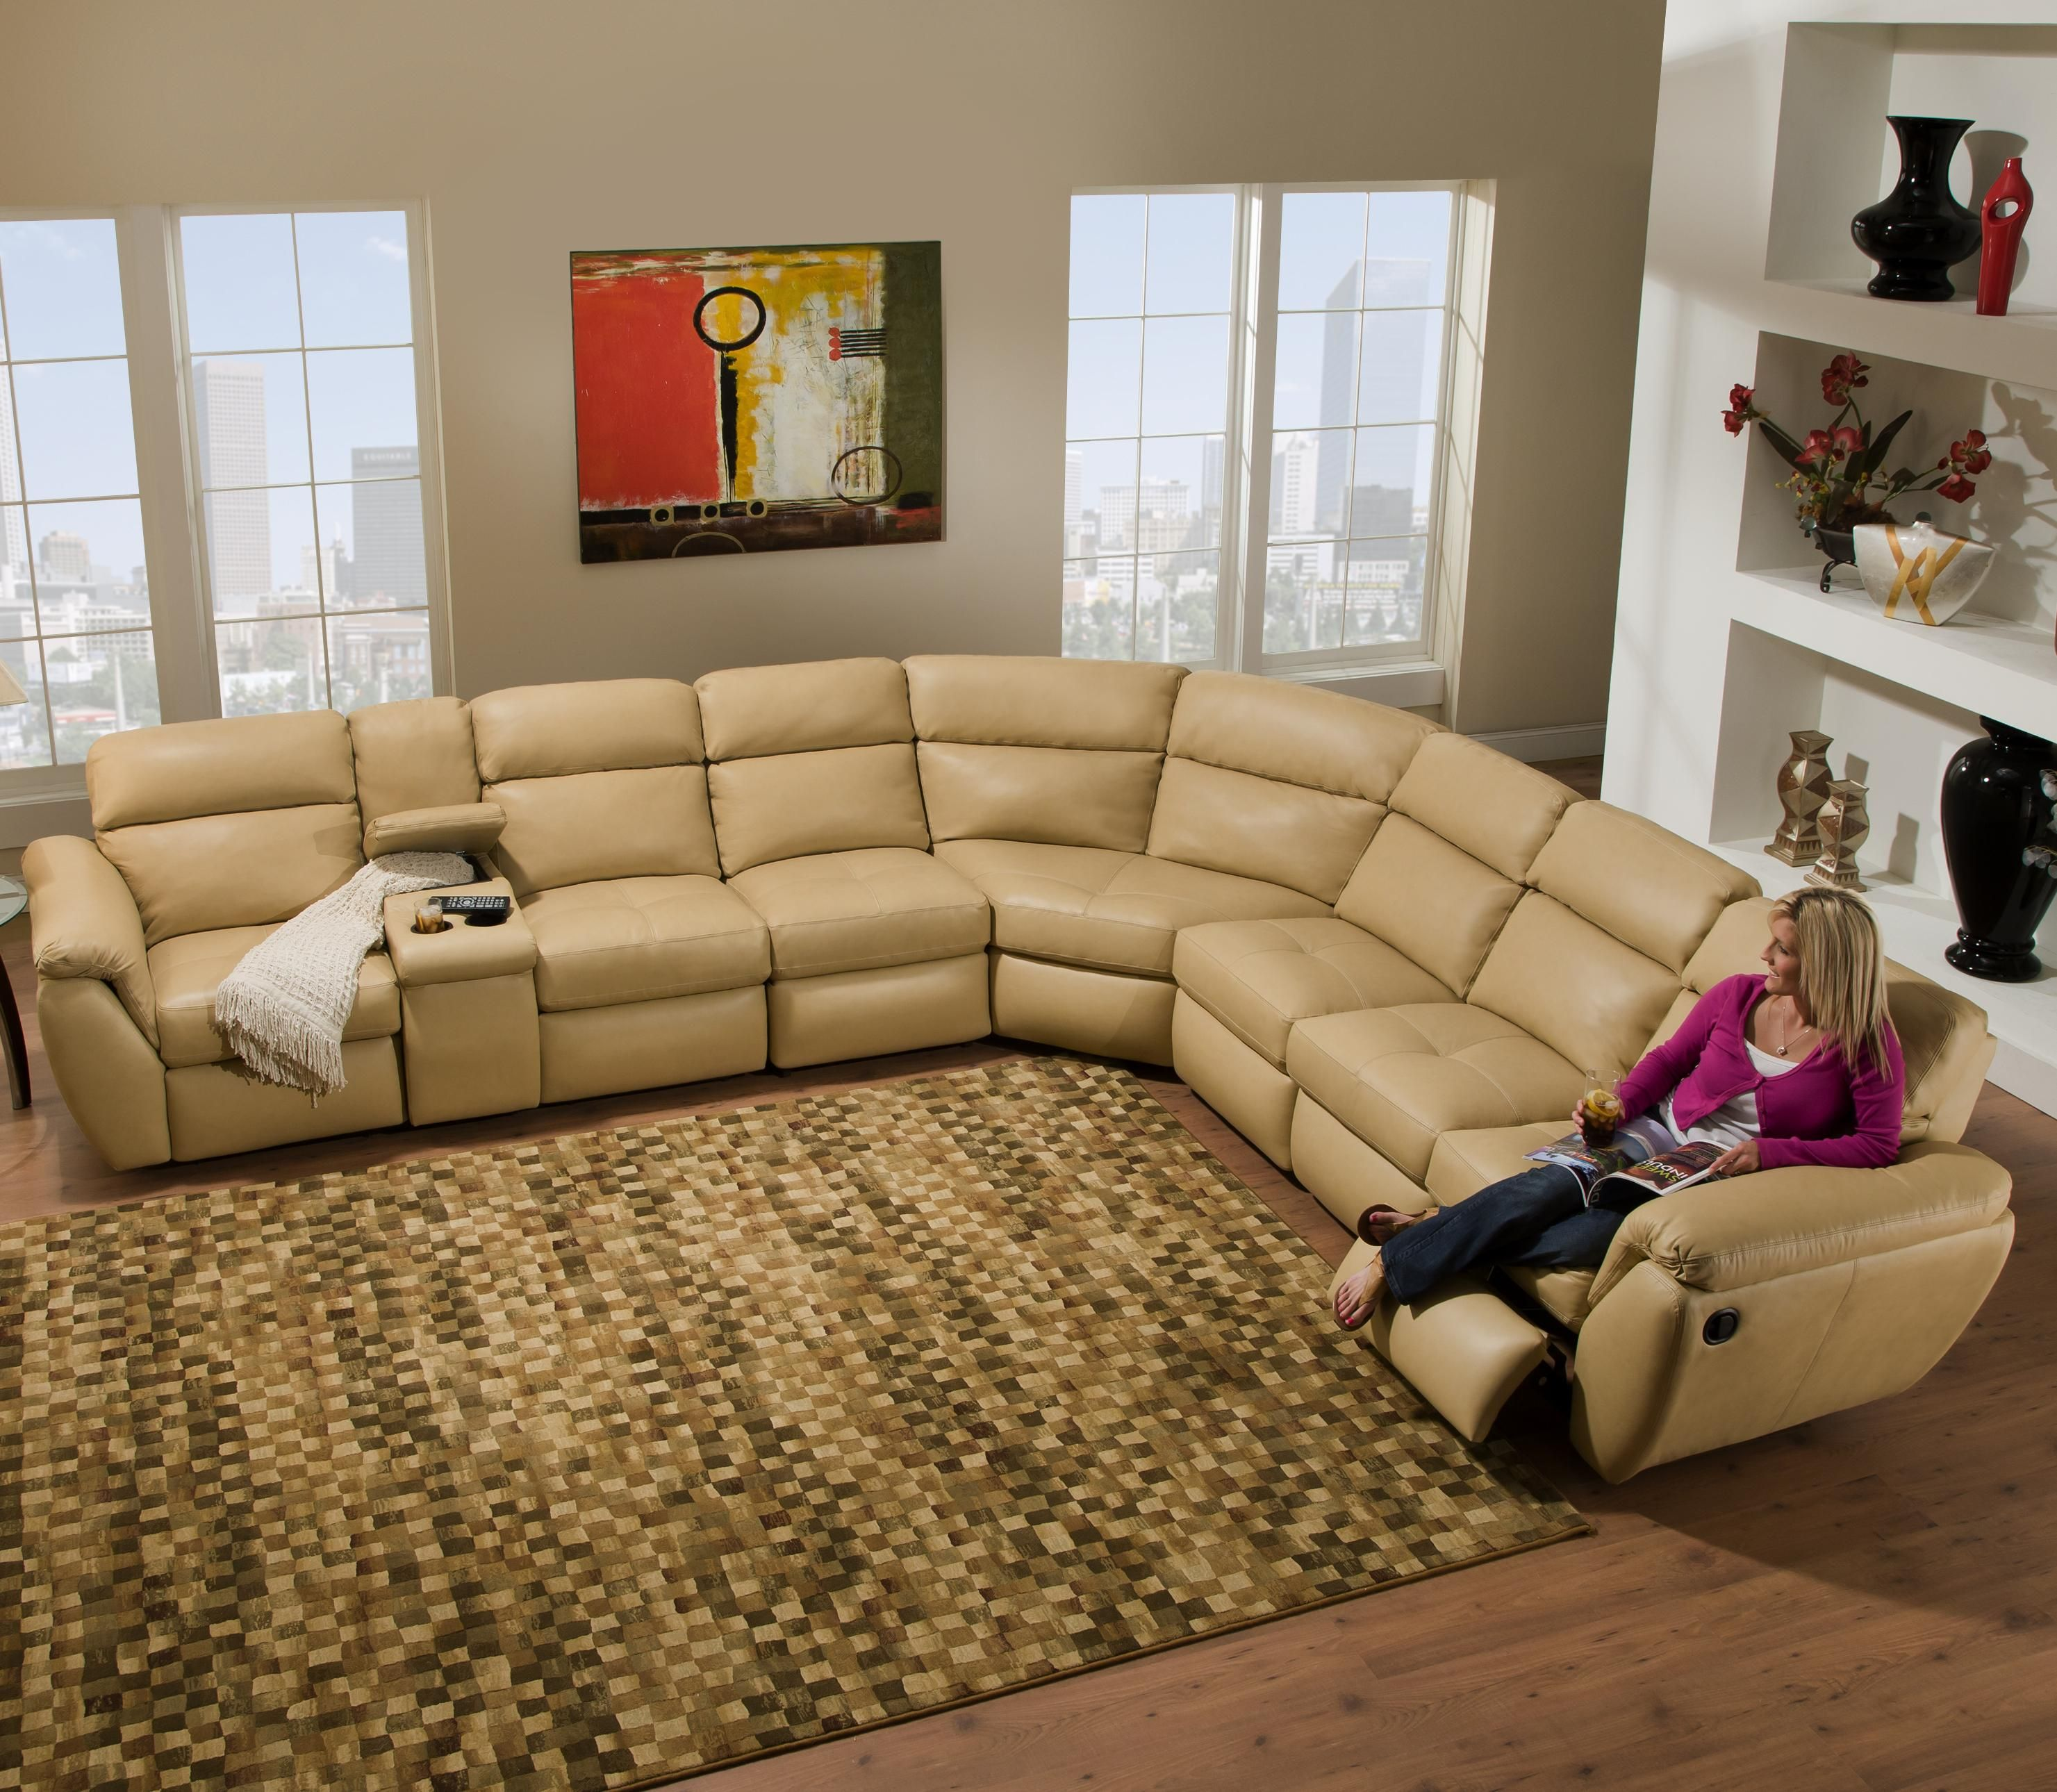 Deco Reclining Sectional Sofa By Southern Motion Dream Home Leather Reclining Sectional Leather Reclining Sofa Reclining Sectional